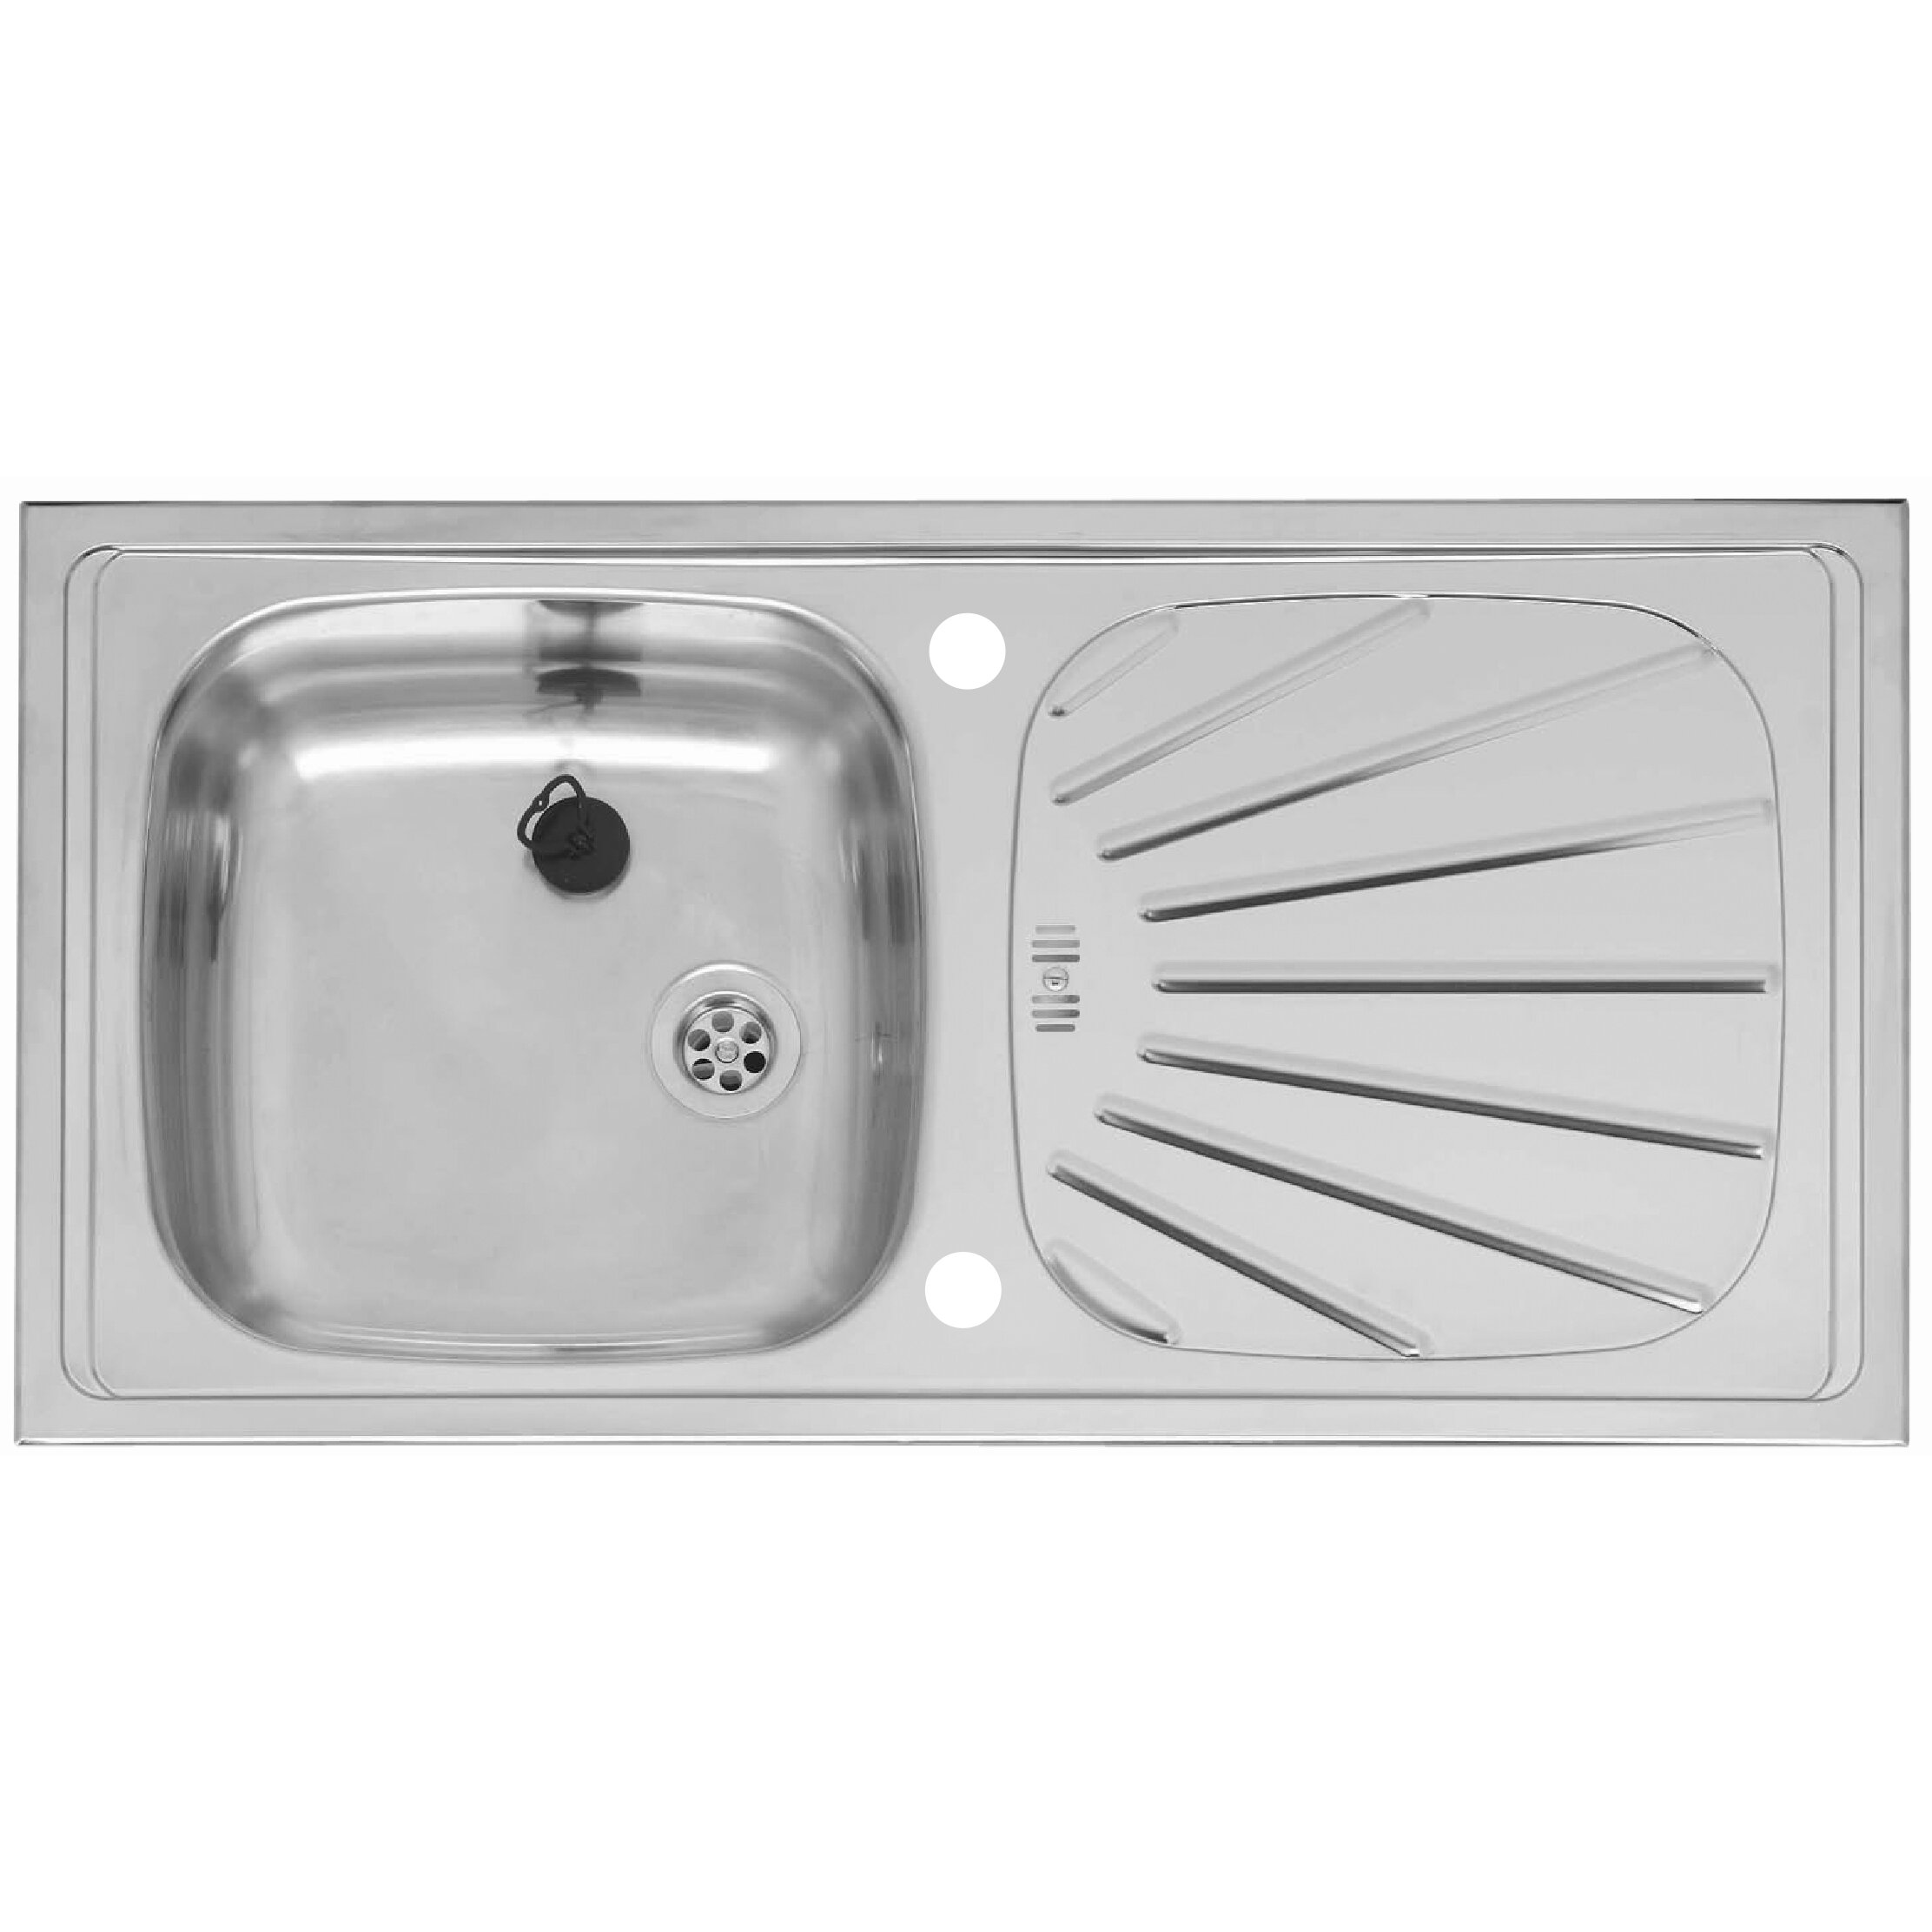 reginox 86cm x single bowl kitchen sink reviews wayfair uk